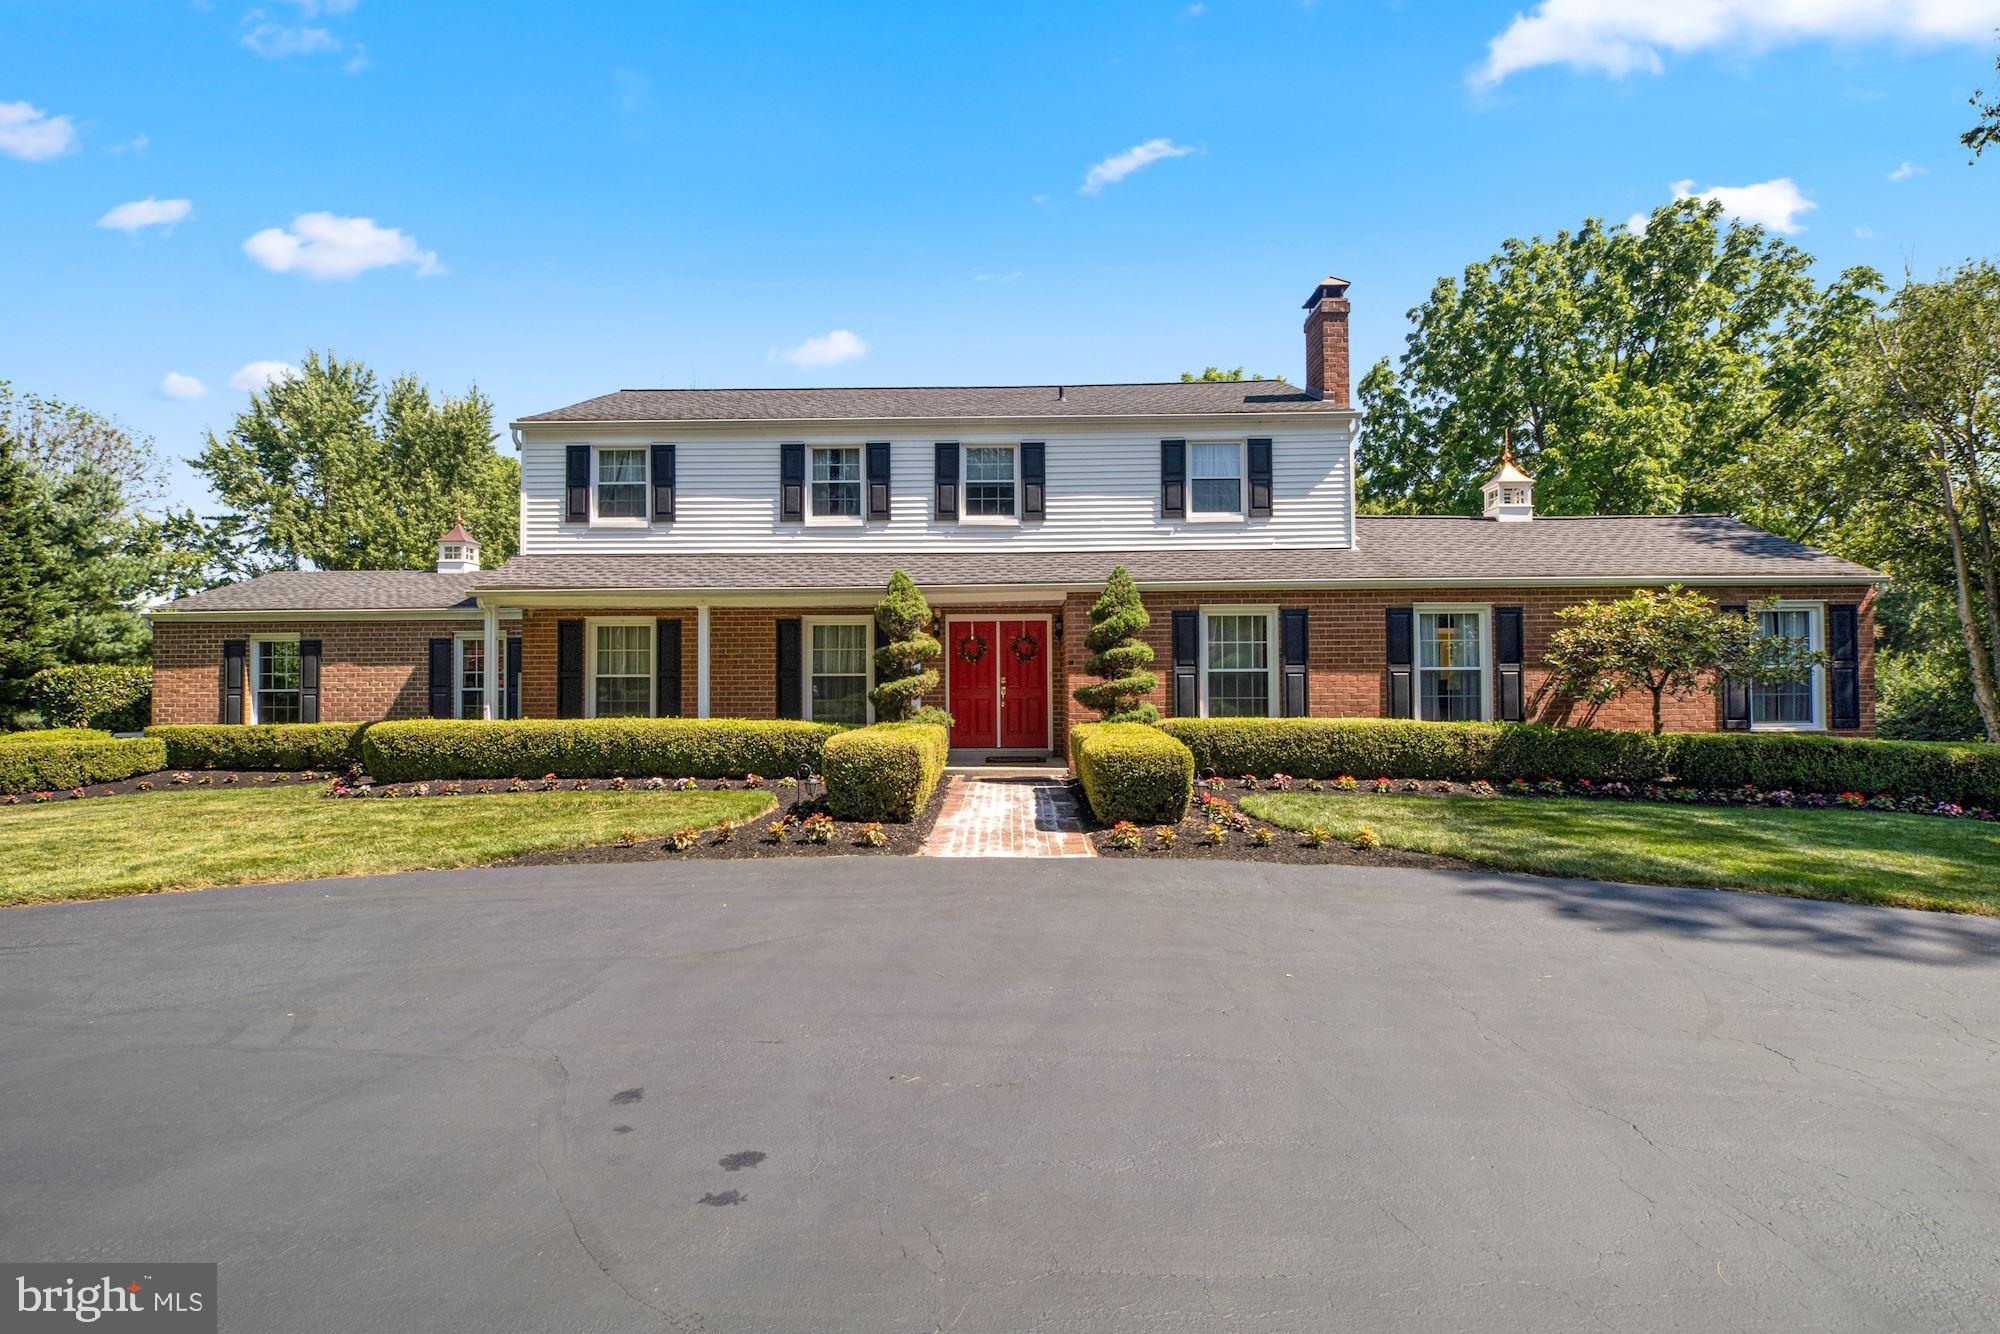 Welcome Home!  This gorgeous home located in the award winning West Chester Area School District is not something to miss!  As you enter the home you are greeted with a lovely foyer, formal living room, first floor office, formal dining room, expansive kitchen which is open to a beautiful sunroom and great room with vaulted ceilings and stone fireplace.  There is also a bonus room on this floor which is currently used as a work out/playroom (could be an in law/au pair suite.  The second floor offers a master suite with 3 additional bedrooms and hall bath.  Need more living space, the lower level is finished offering a walk out and full bathroom.  The grounds of this property are stunning with a large deck off the back of the home and brick patio to enjoy the outdoors.  Newer roof, gutters, updated kitchen and baths and house generator too!